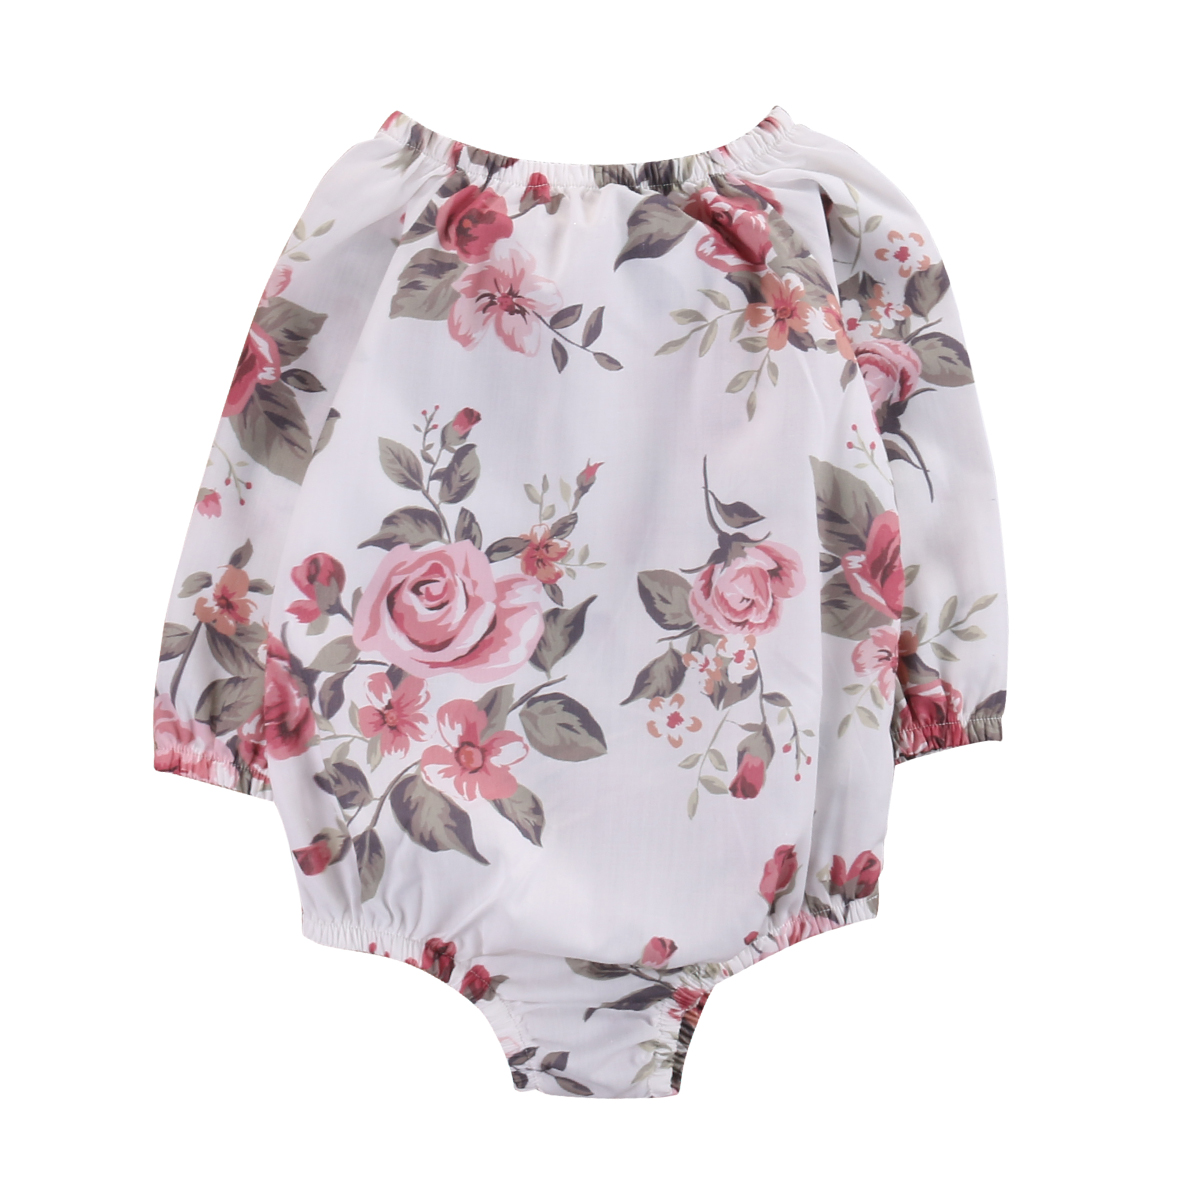 Newborn Baby Girls Summer Floral Clothes Clothing Long Sleeve Romper Jumpsuit Playsuit Outfit Sunsuit Whoelsale Drop ship summer newborn infant baby girl romper short sleeve floral romper jumpsuit outfits sunsuit clothes